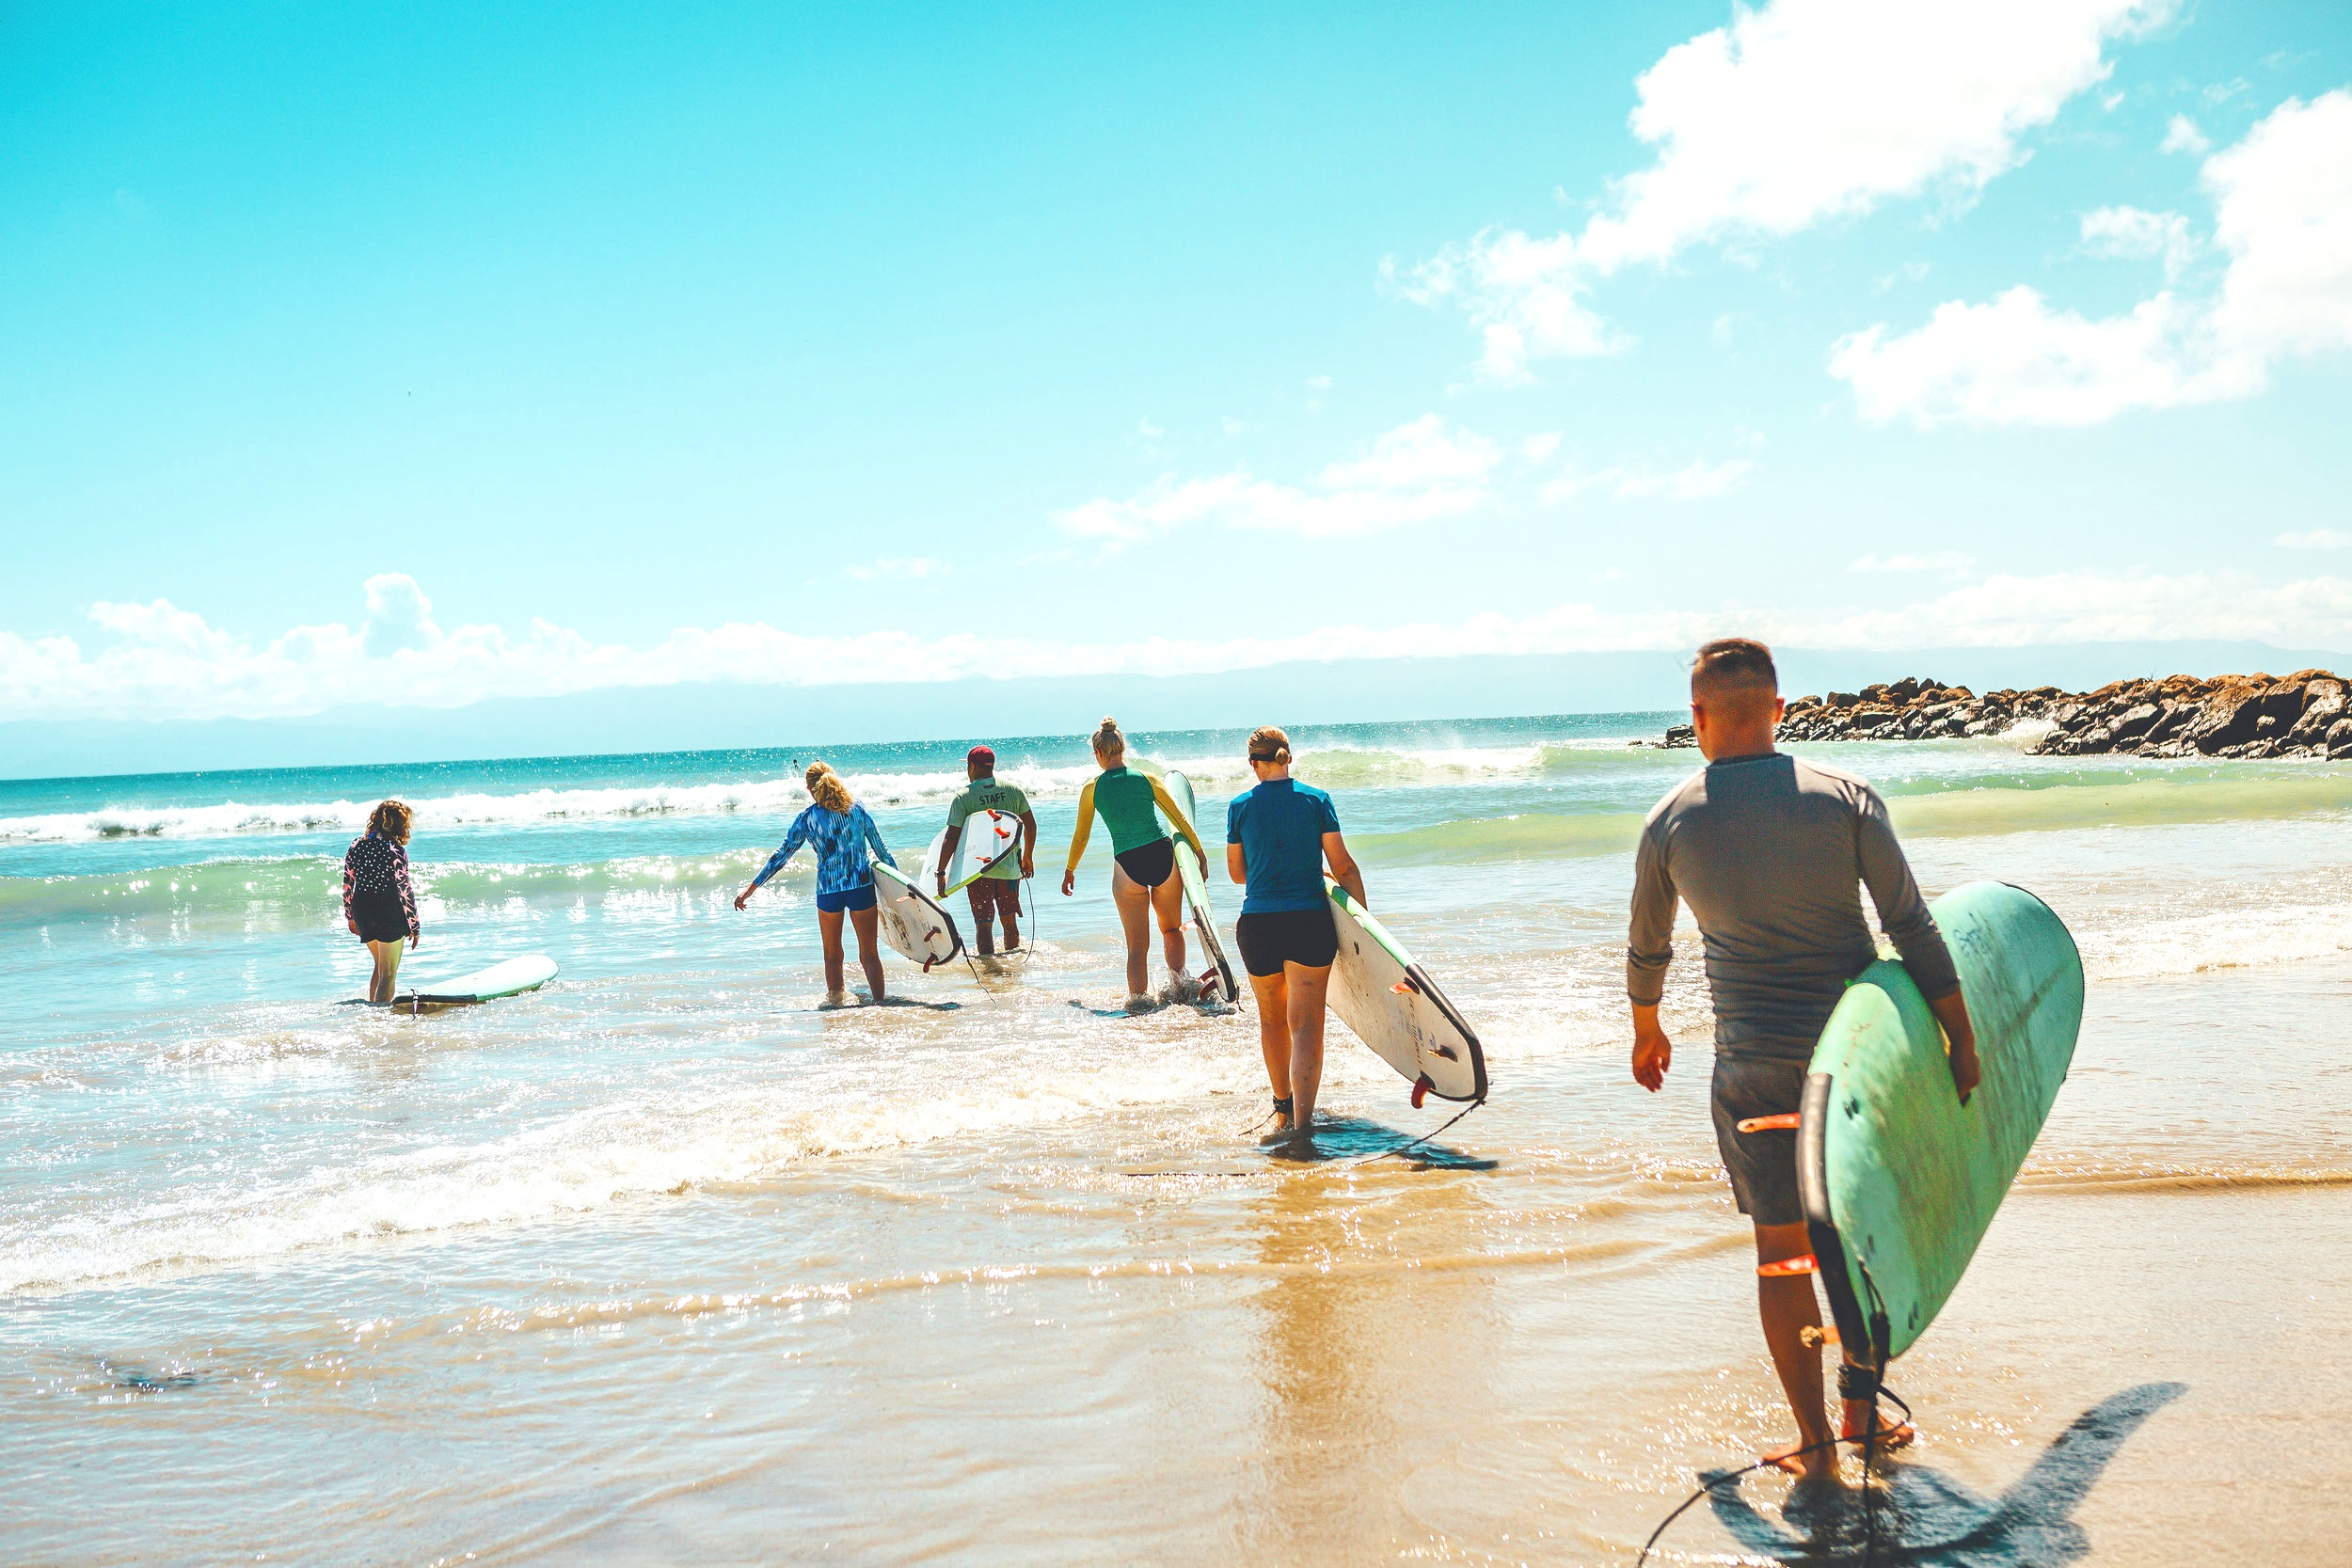 Raincity x TBC do Costa Rica - Join Danielle Boyd and Simon Damborg of Raincity Athletics for a Week of fitness, mobility and FUN in Tamarindo Costa Rica. March 14-21, 2020.